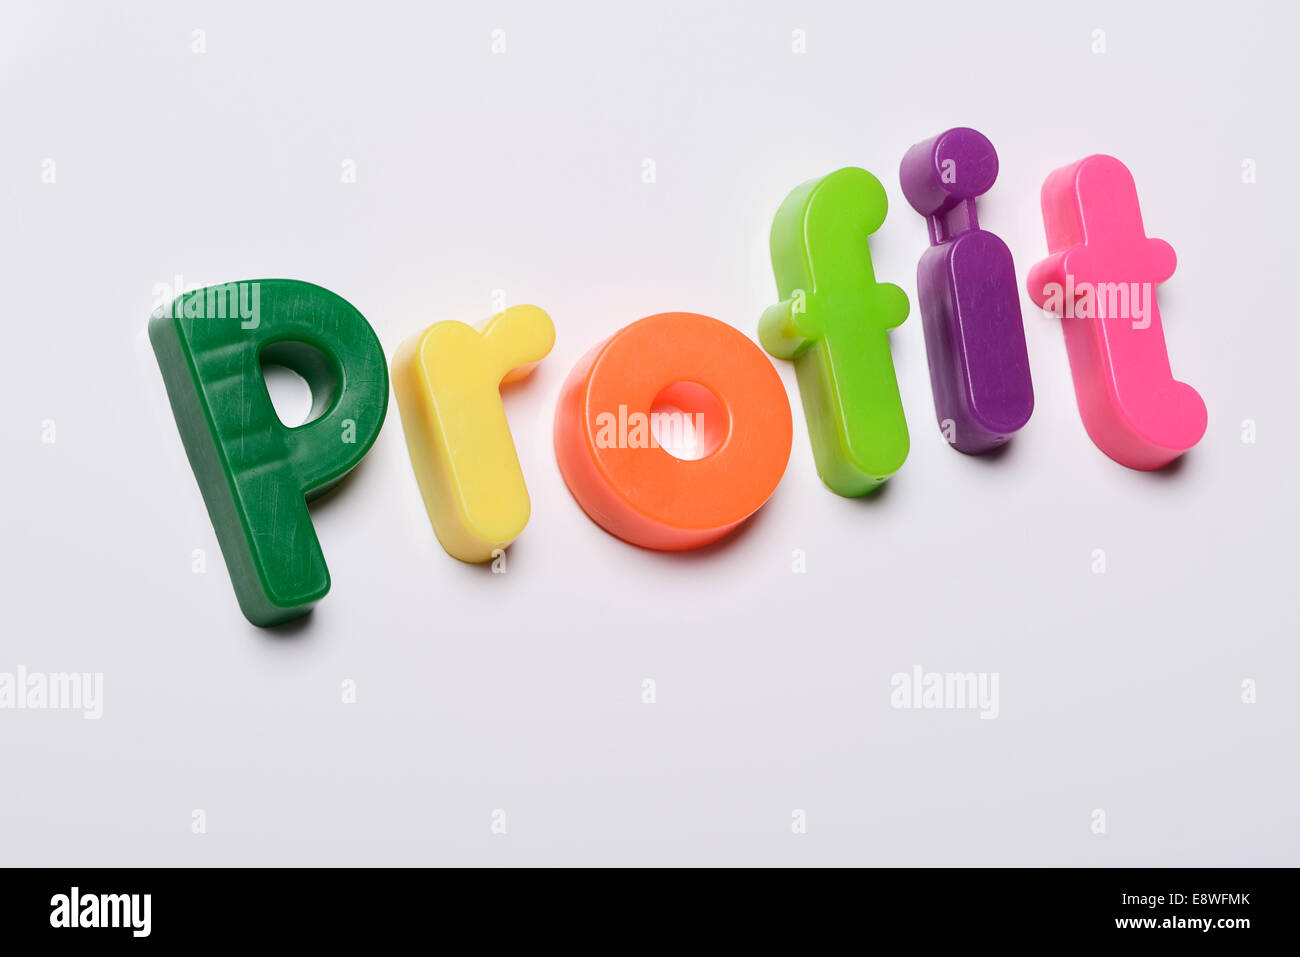 Profit made from magnetic fridge letters - Stock Image